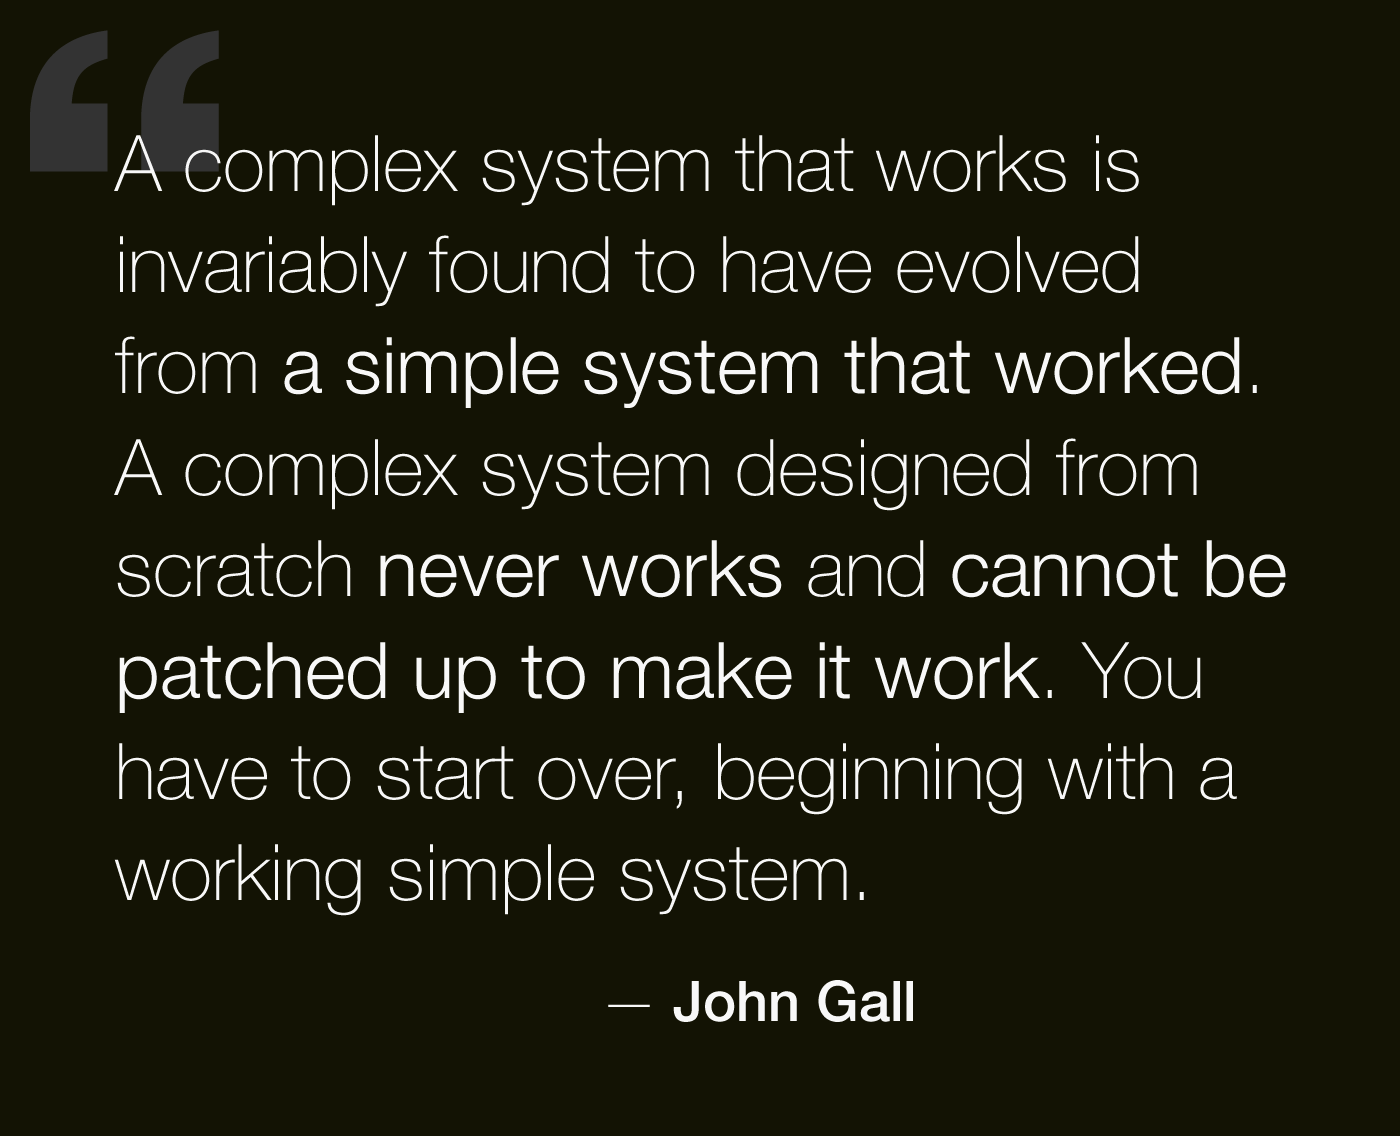 A complex system that works is invariably found to have evolved from a simple system that works. The inverse proposition also appears to be true: A complex system designed from scratch never works and cannot be made to work. - John Gall, Systemantics, 1975.